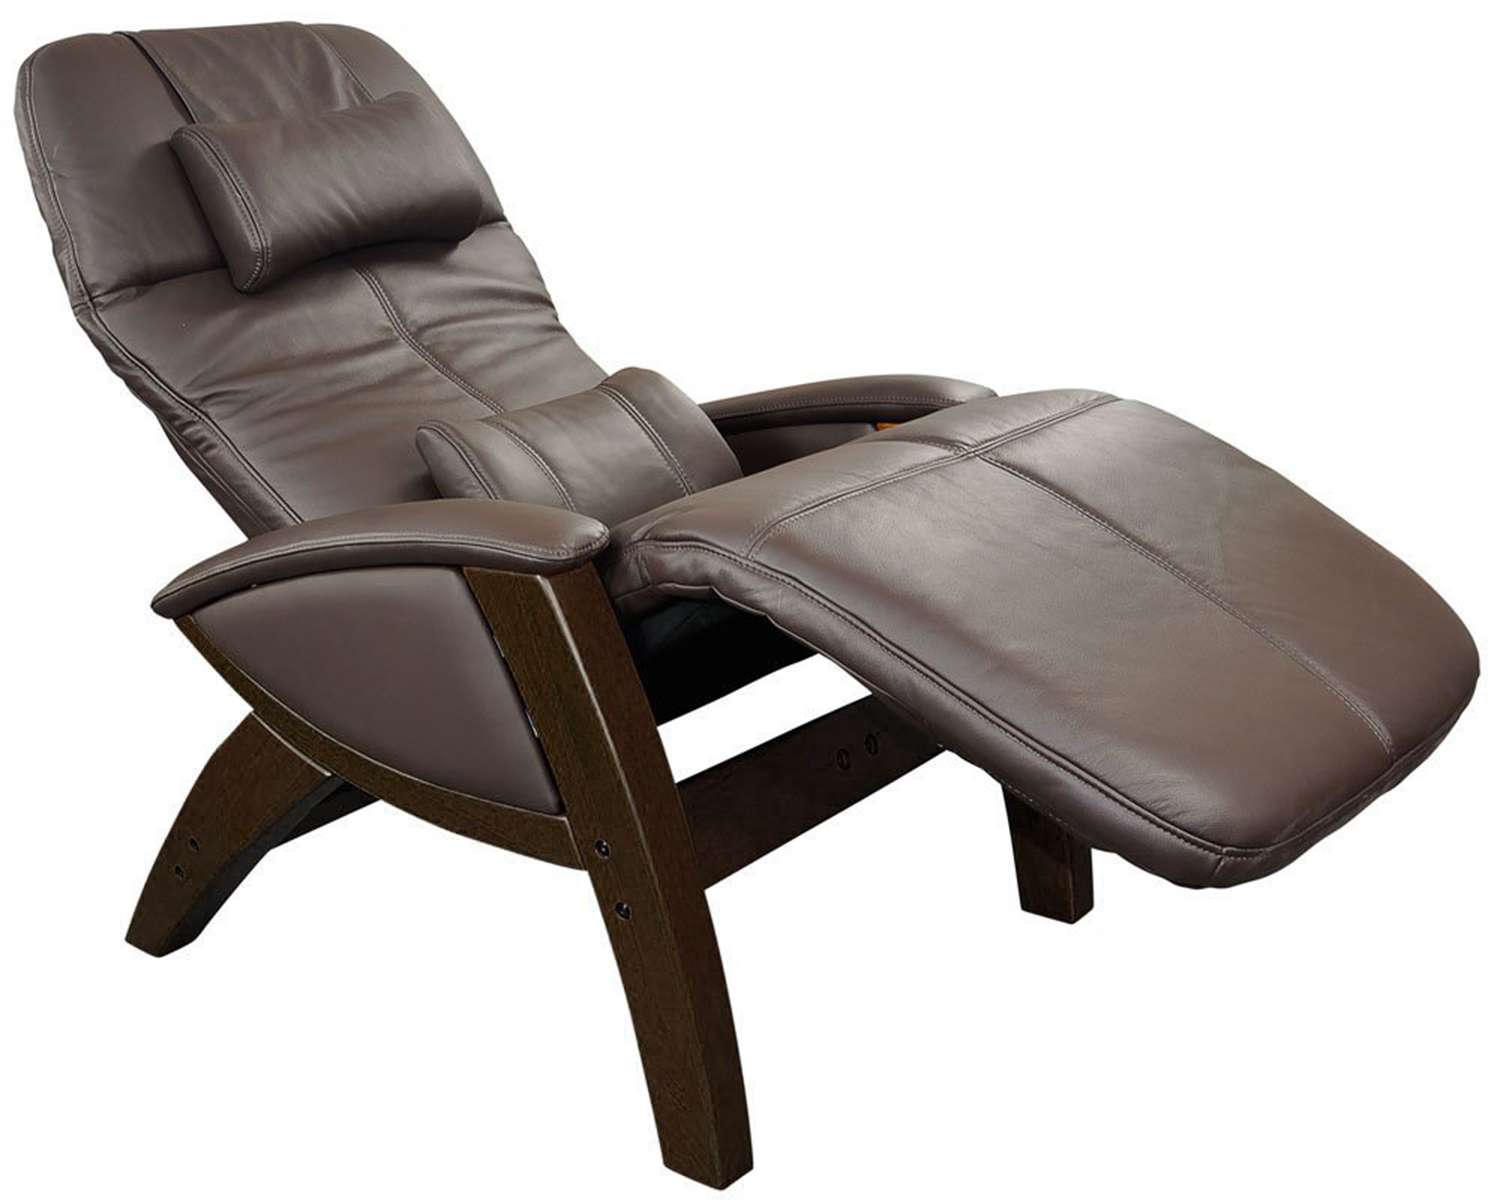 Svago sv400 lusso zero gravity recliner chair for Chair zero gravity